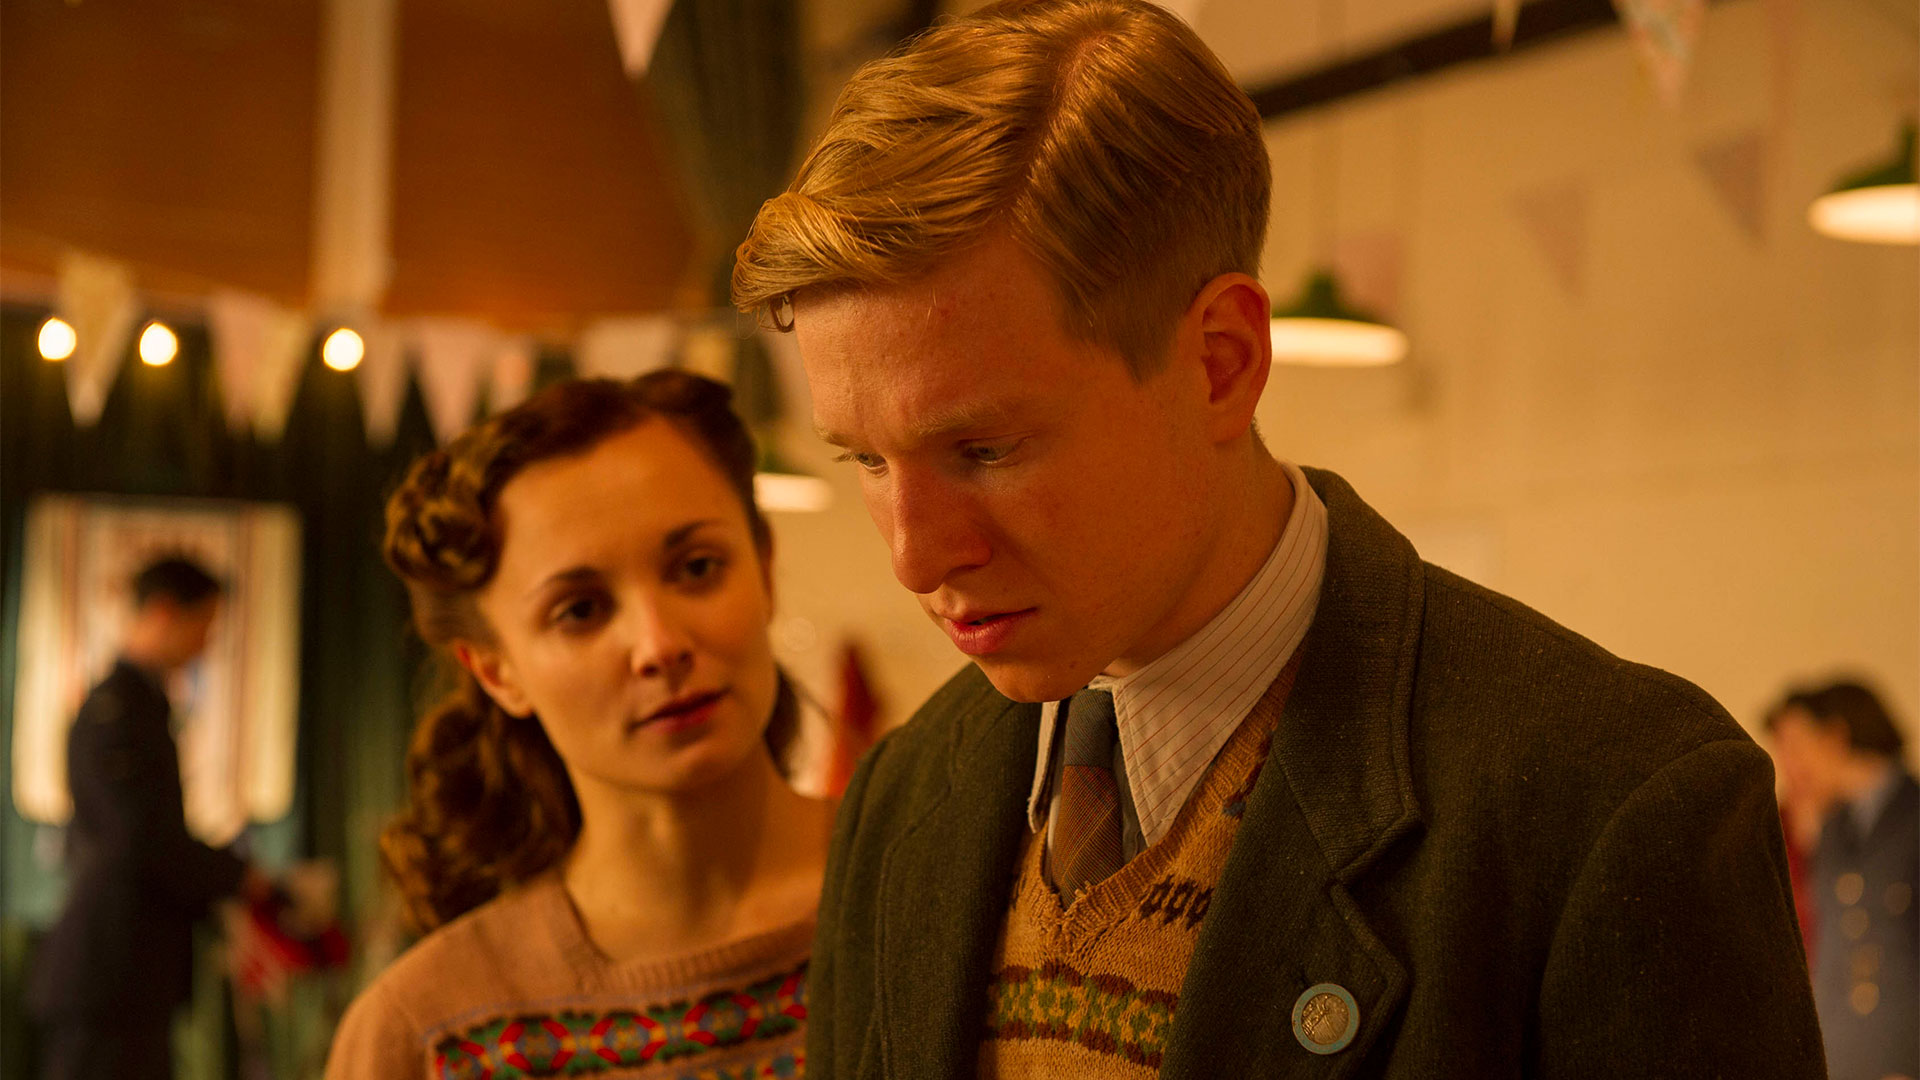 Will Attenborough as David. The final episode of Home Fires airs Sunday, May 7 at 9:00 pm on PBS 6.